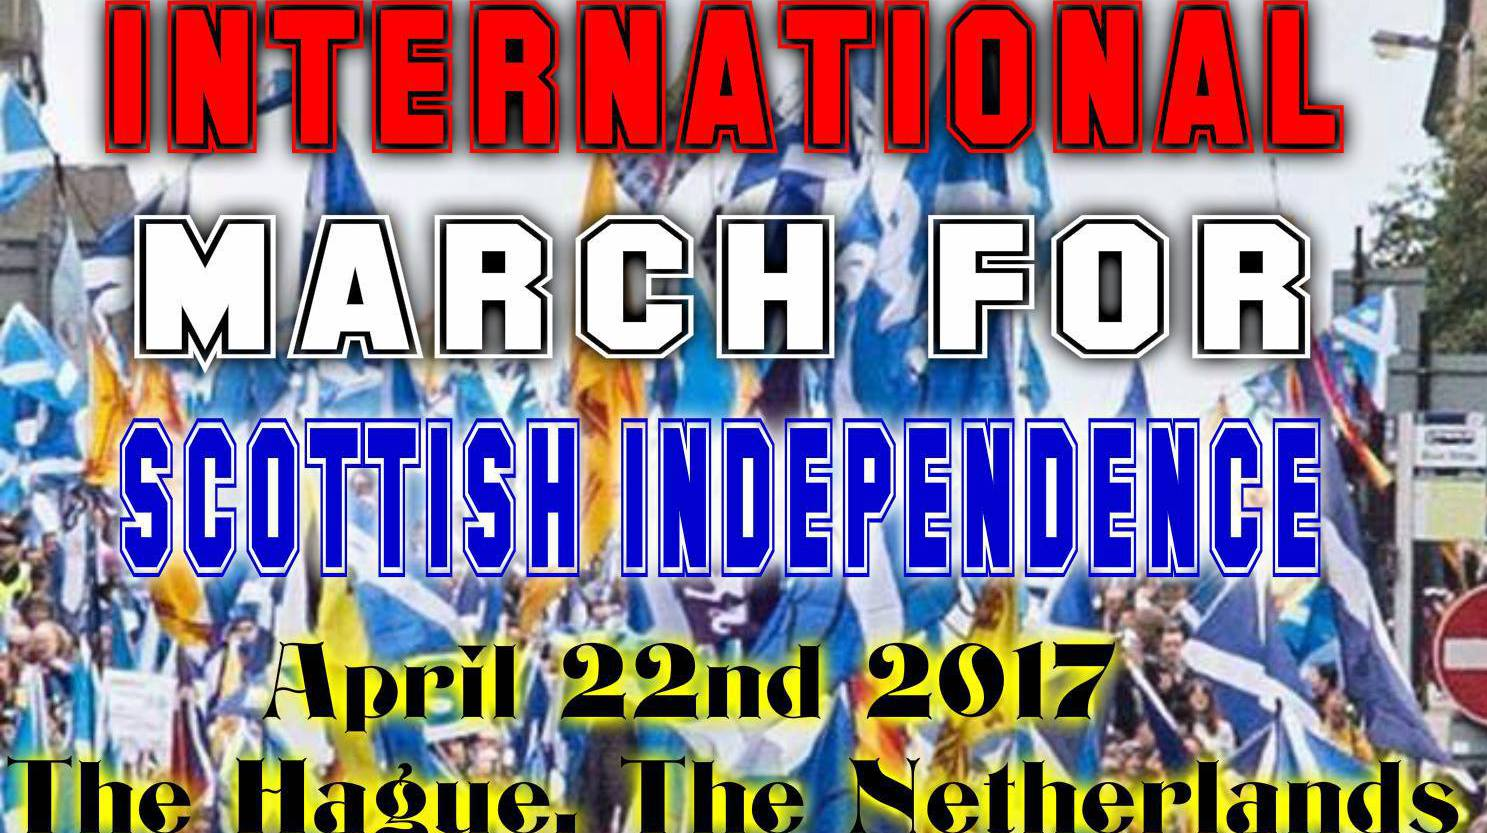 International march and rally for Scottish Independence in the Hague